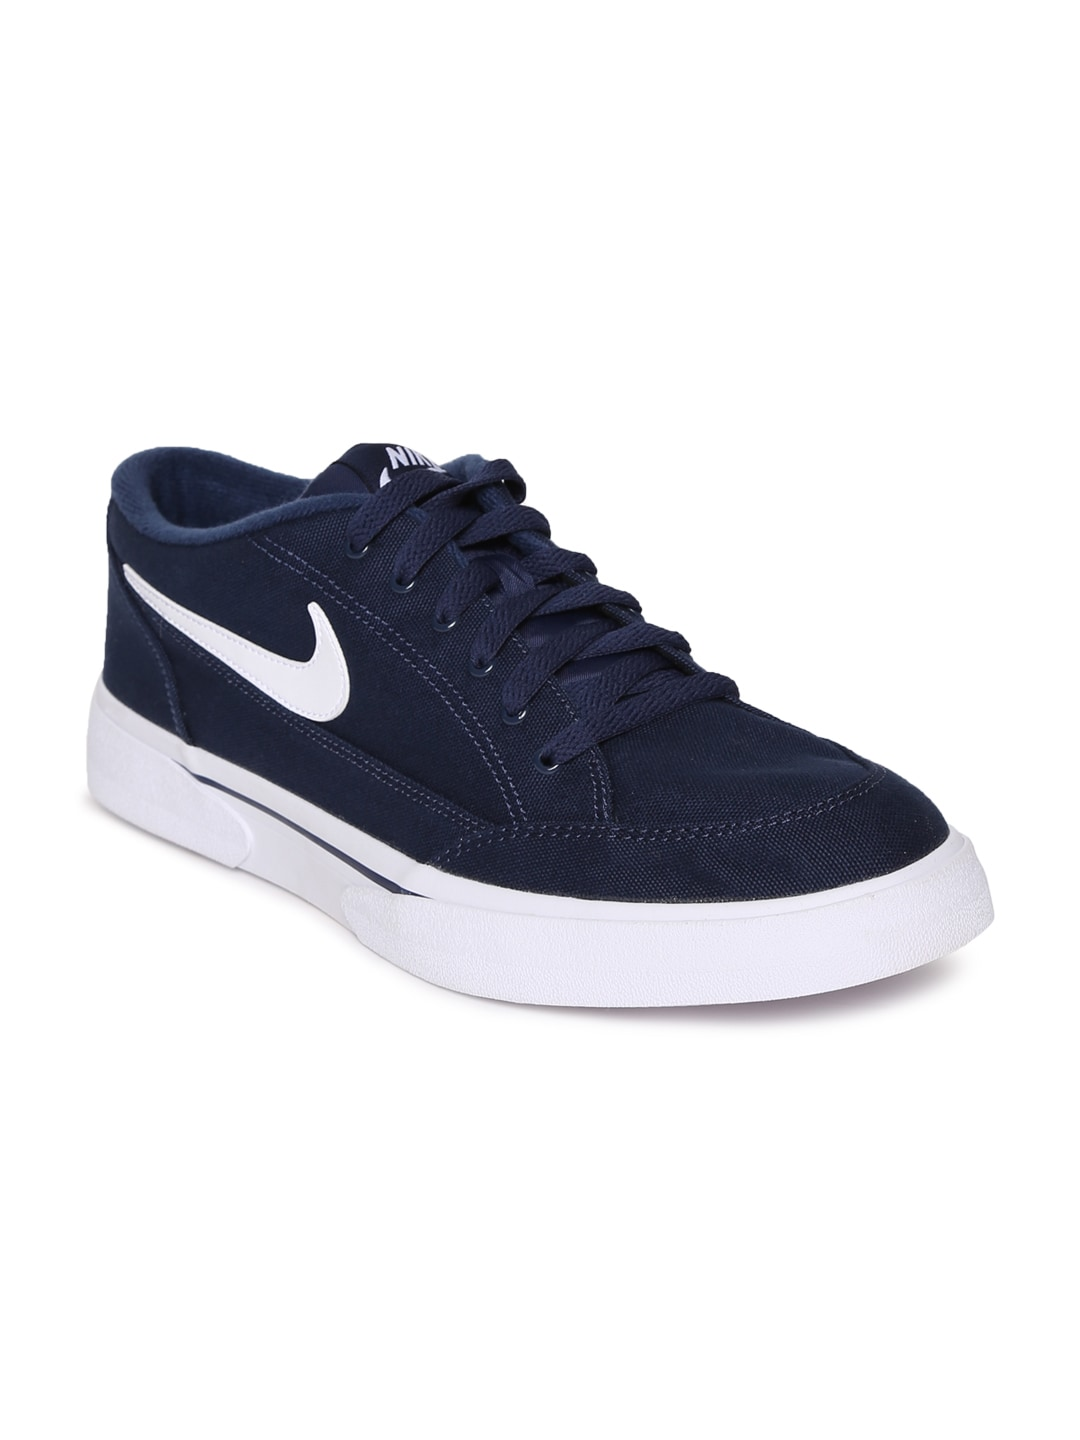 In Online Nike Shoes Buy India Mens RLS534cAjq